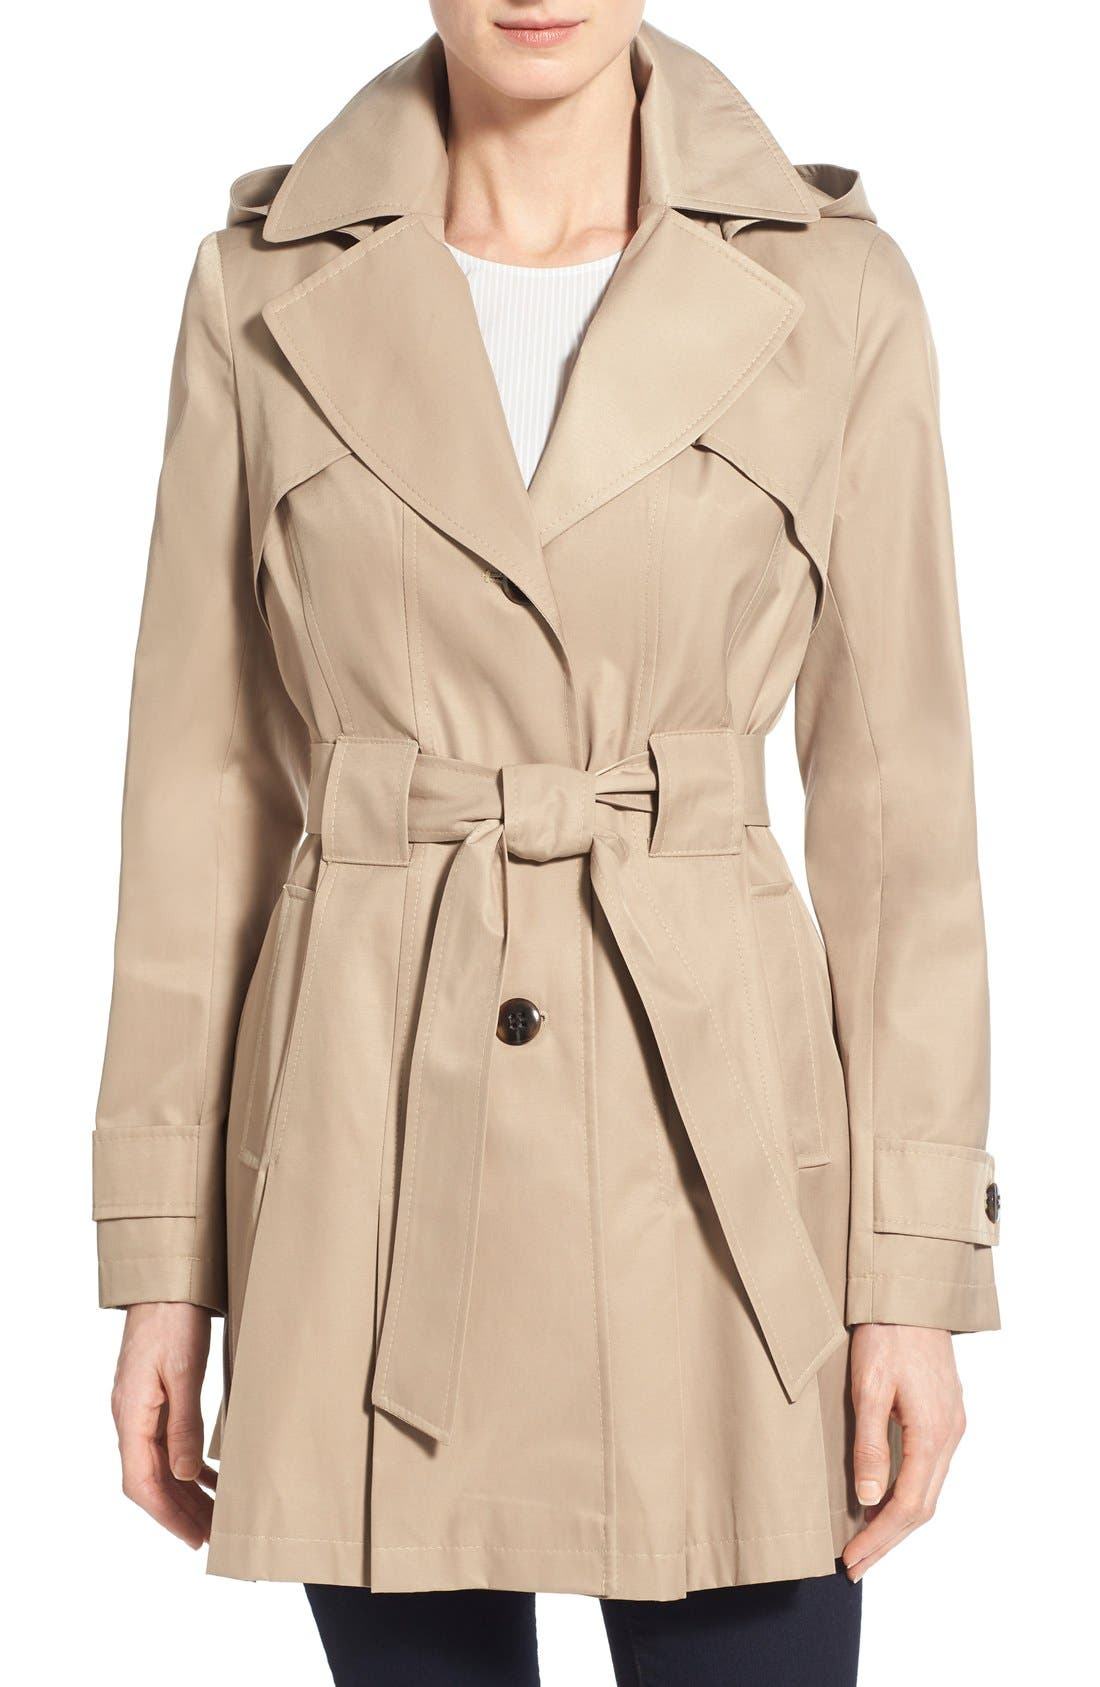 'Scarpa' Hooded Single Breasted Trench Coat,                             Main thumbnail 4, color,